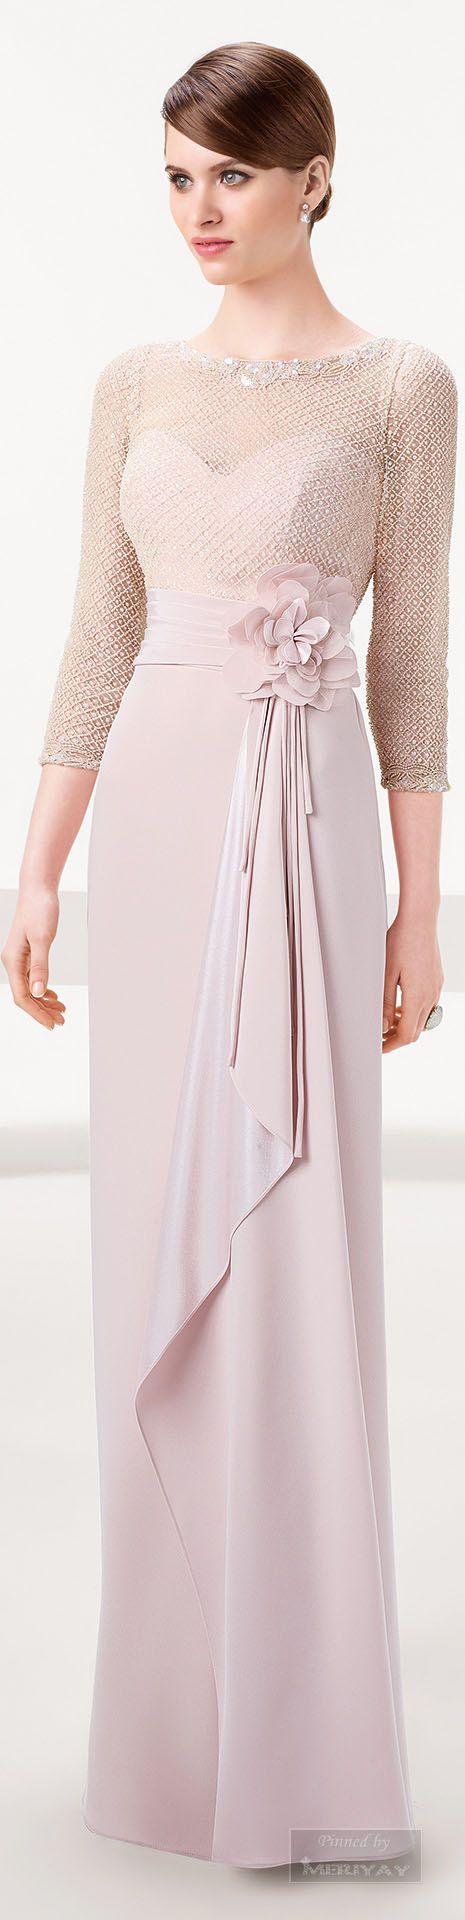 Pastel colored mother of the bride evening dress three quarter